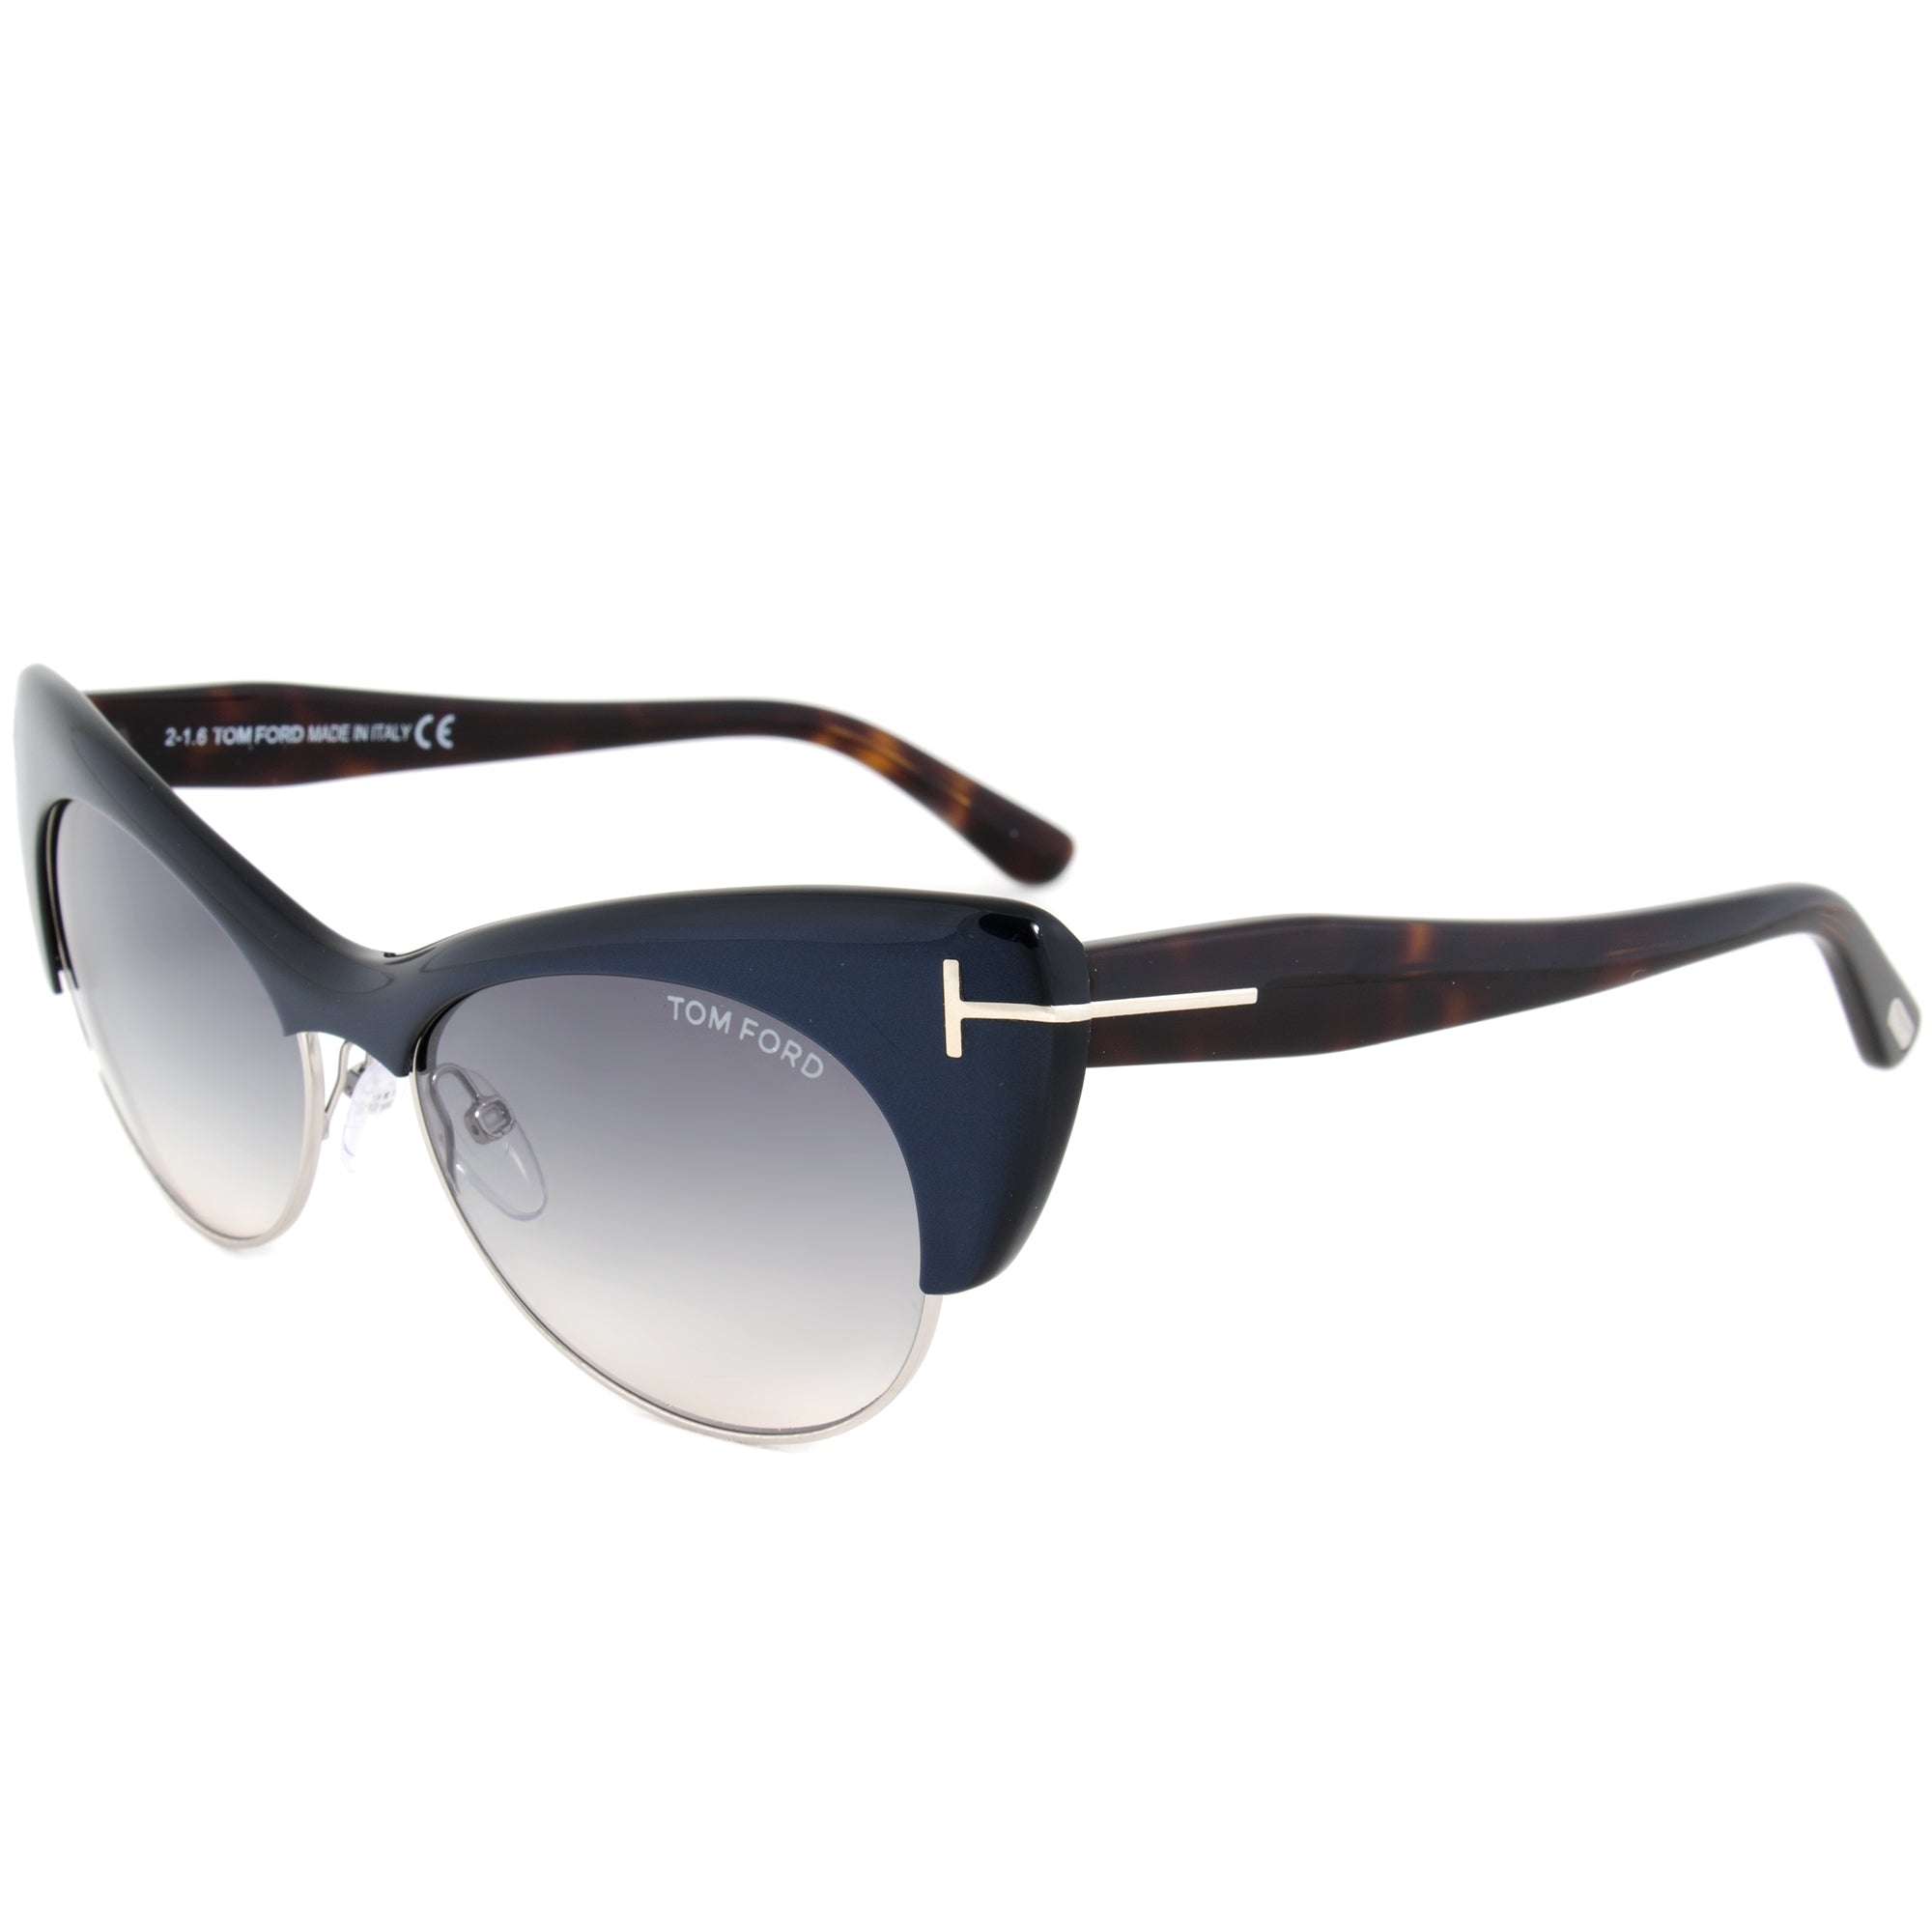 Tom Ford Lola Sunglasses FT0387 | Blue Gradient Lens